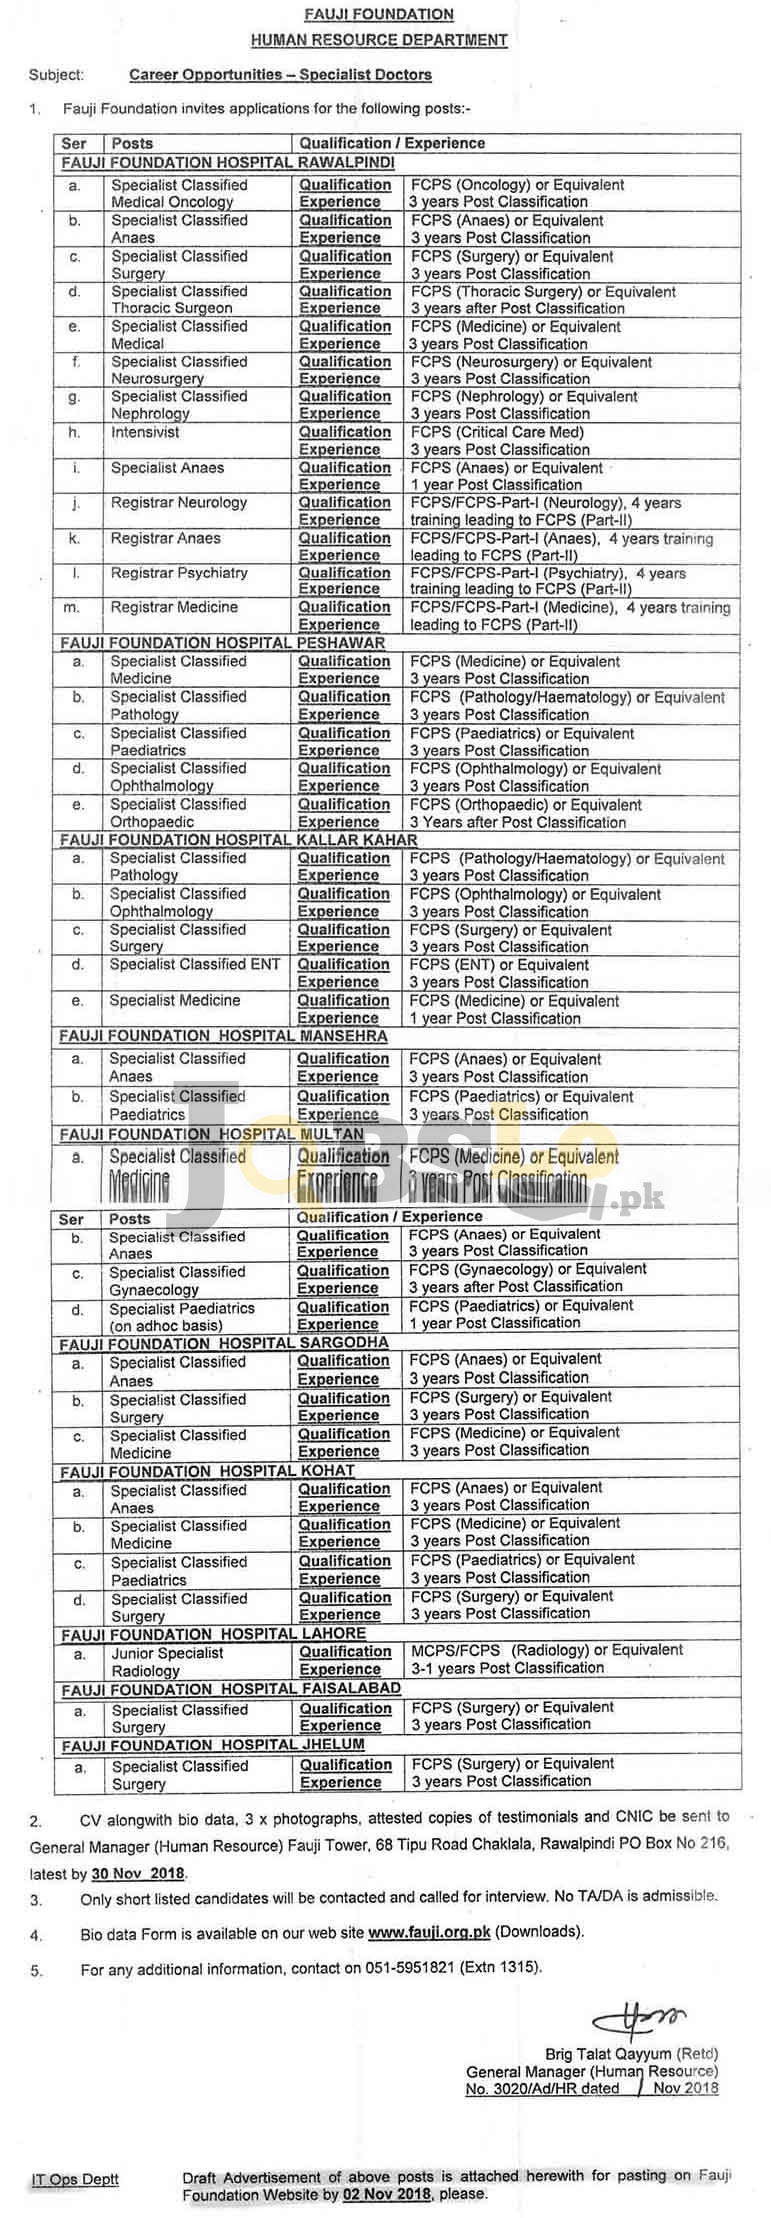 Fauji Foundation Jobs 2018 Human Resources Department For Specialist Doctors